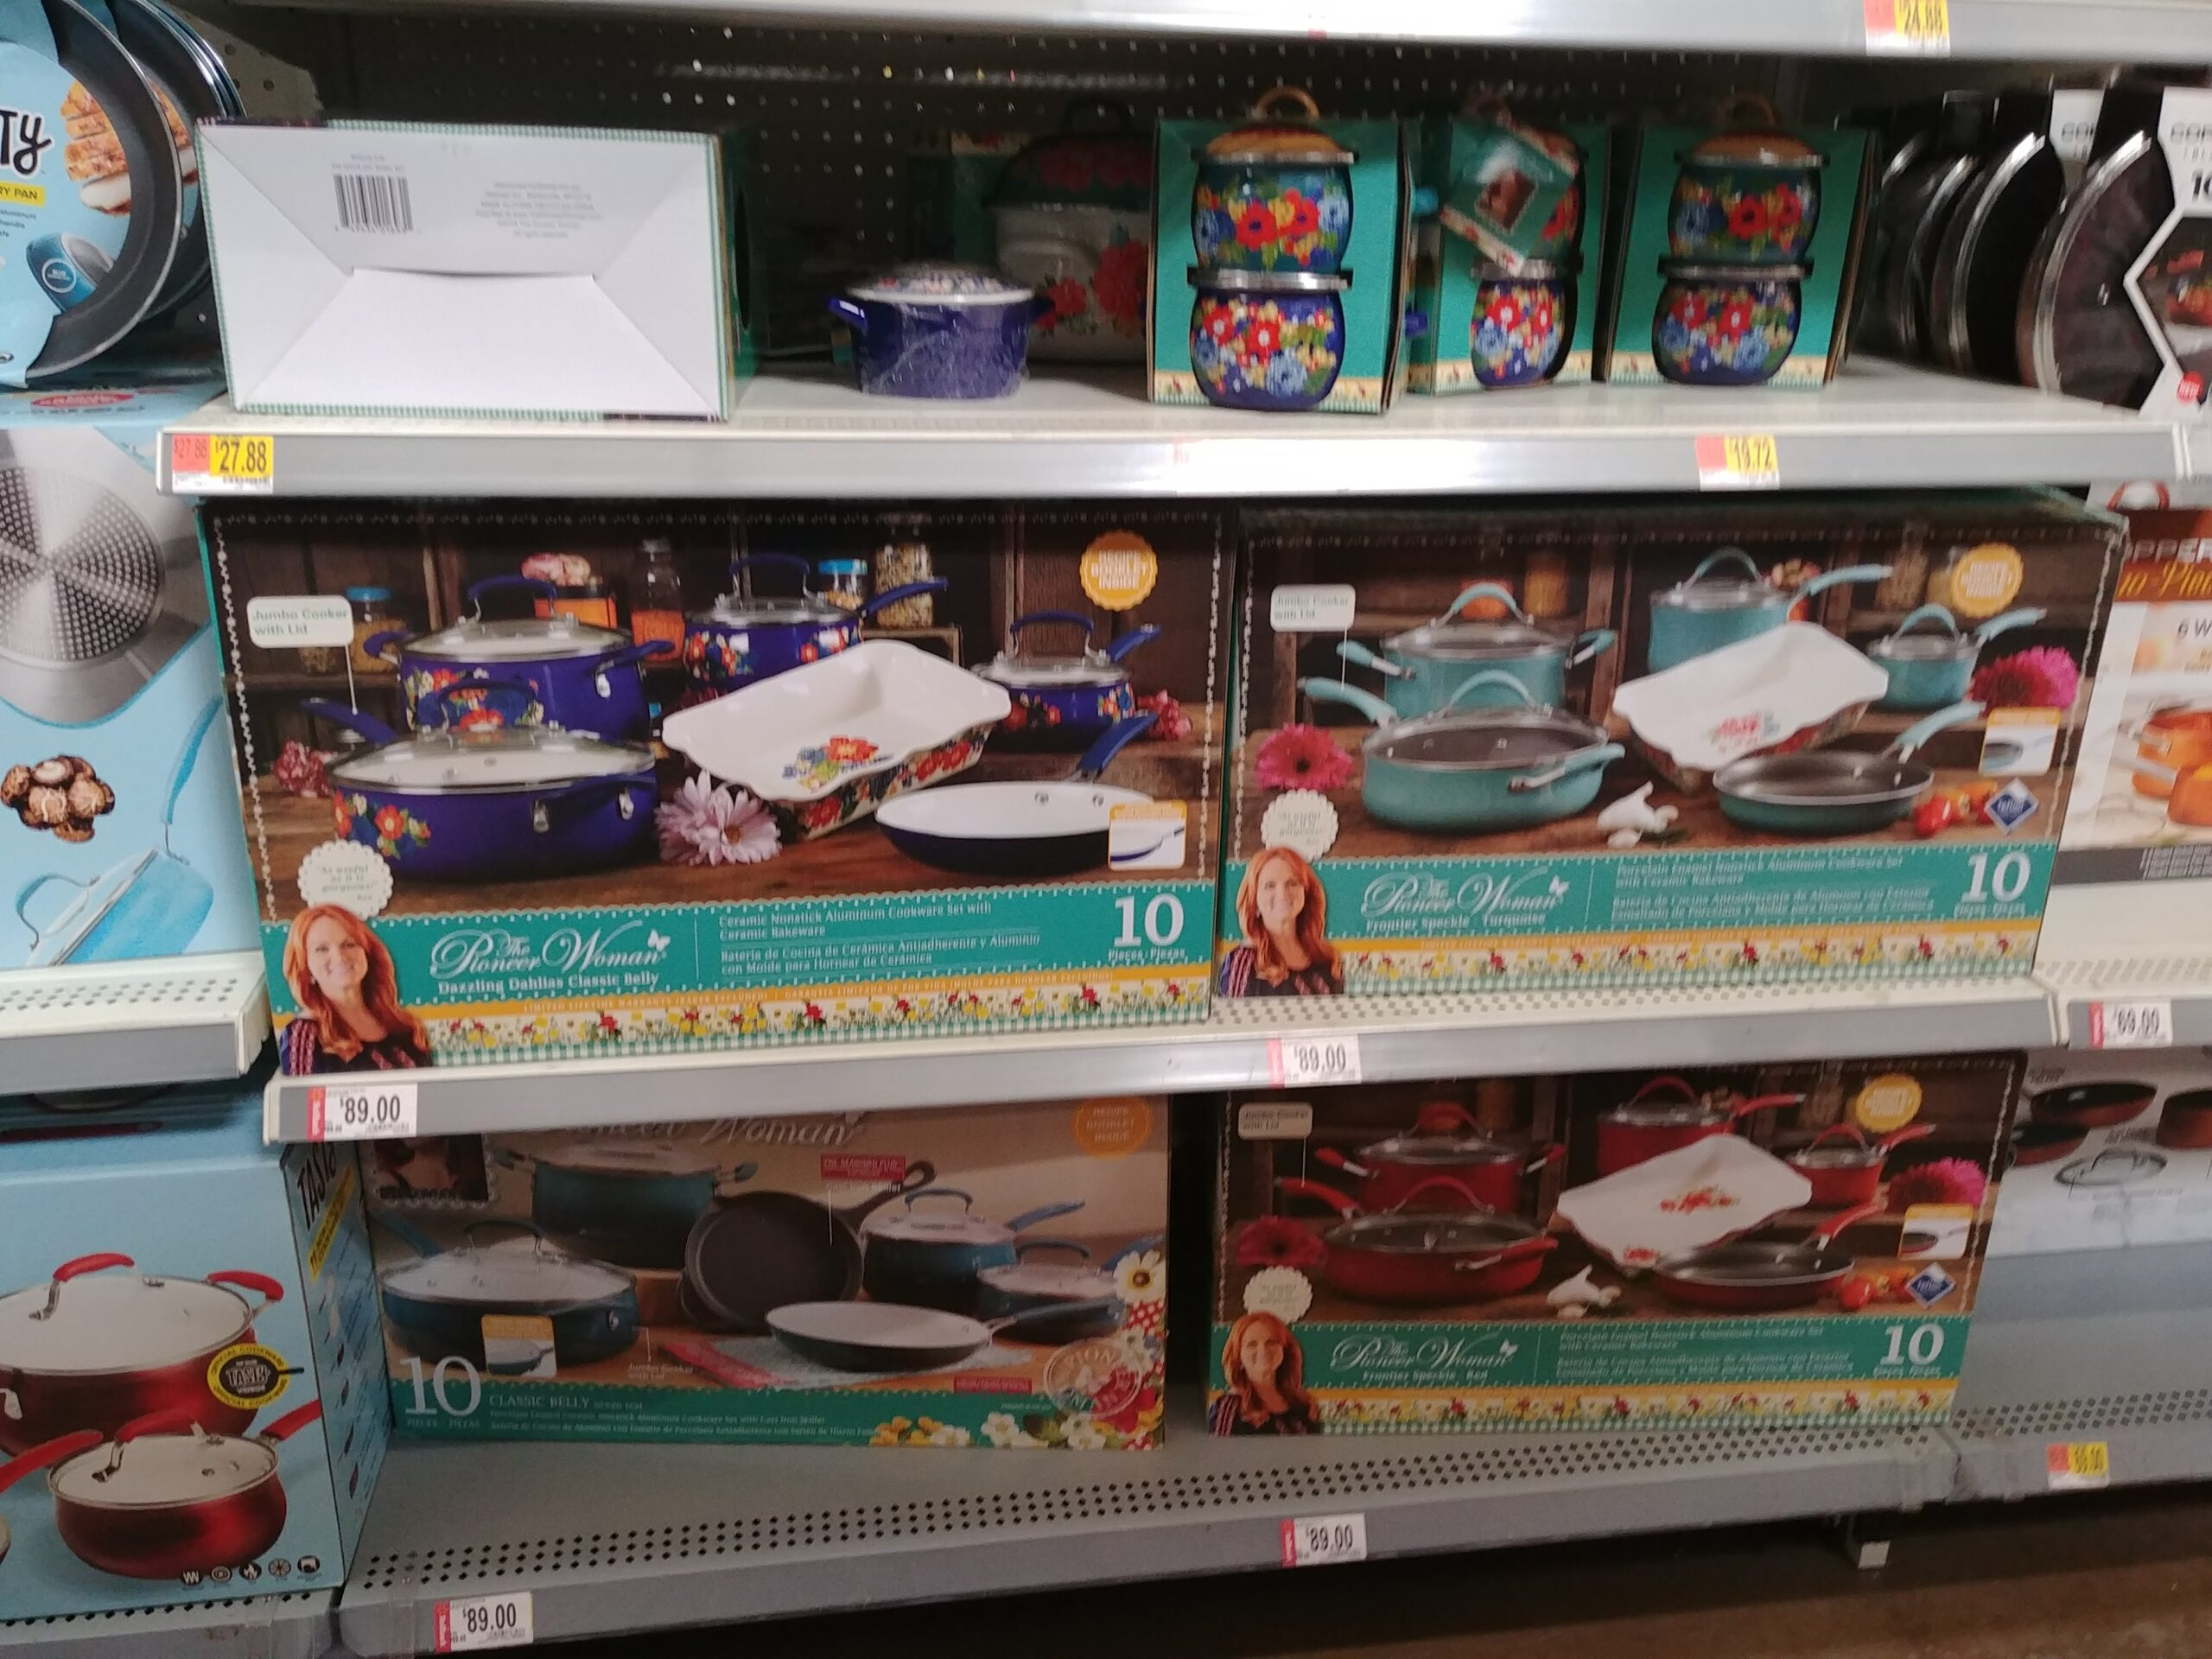 The Pioneer Woman 24-Piece Cookware Set at Walmart